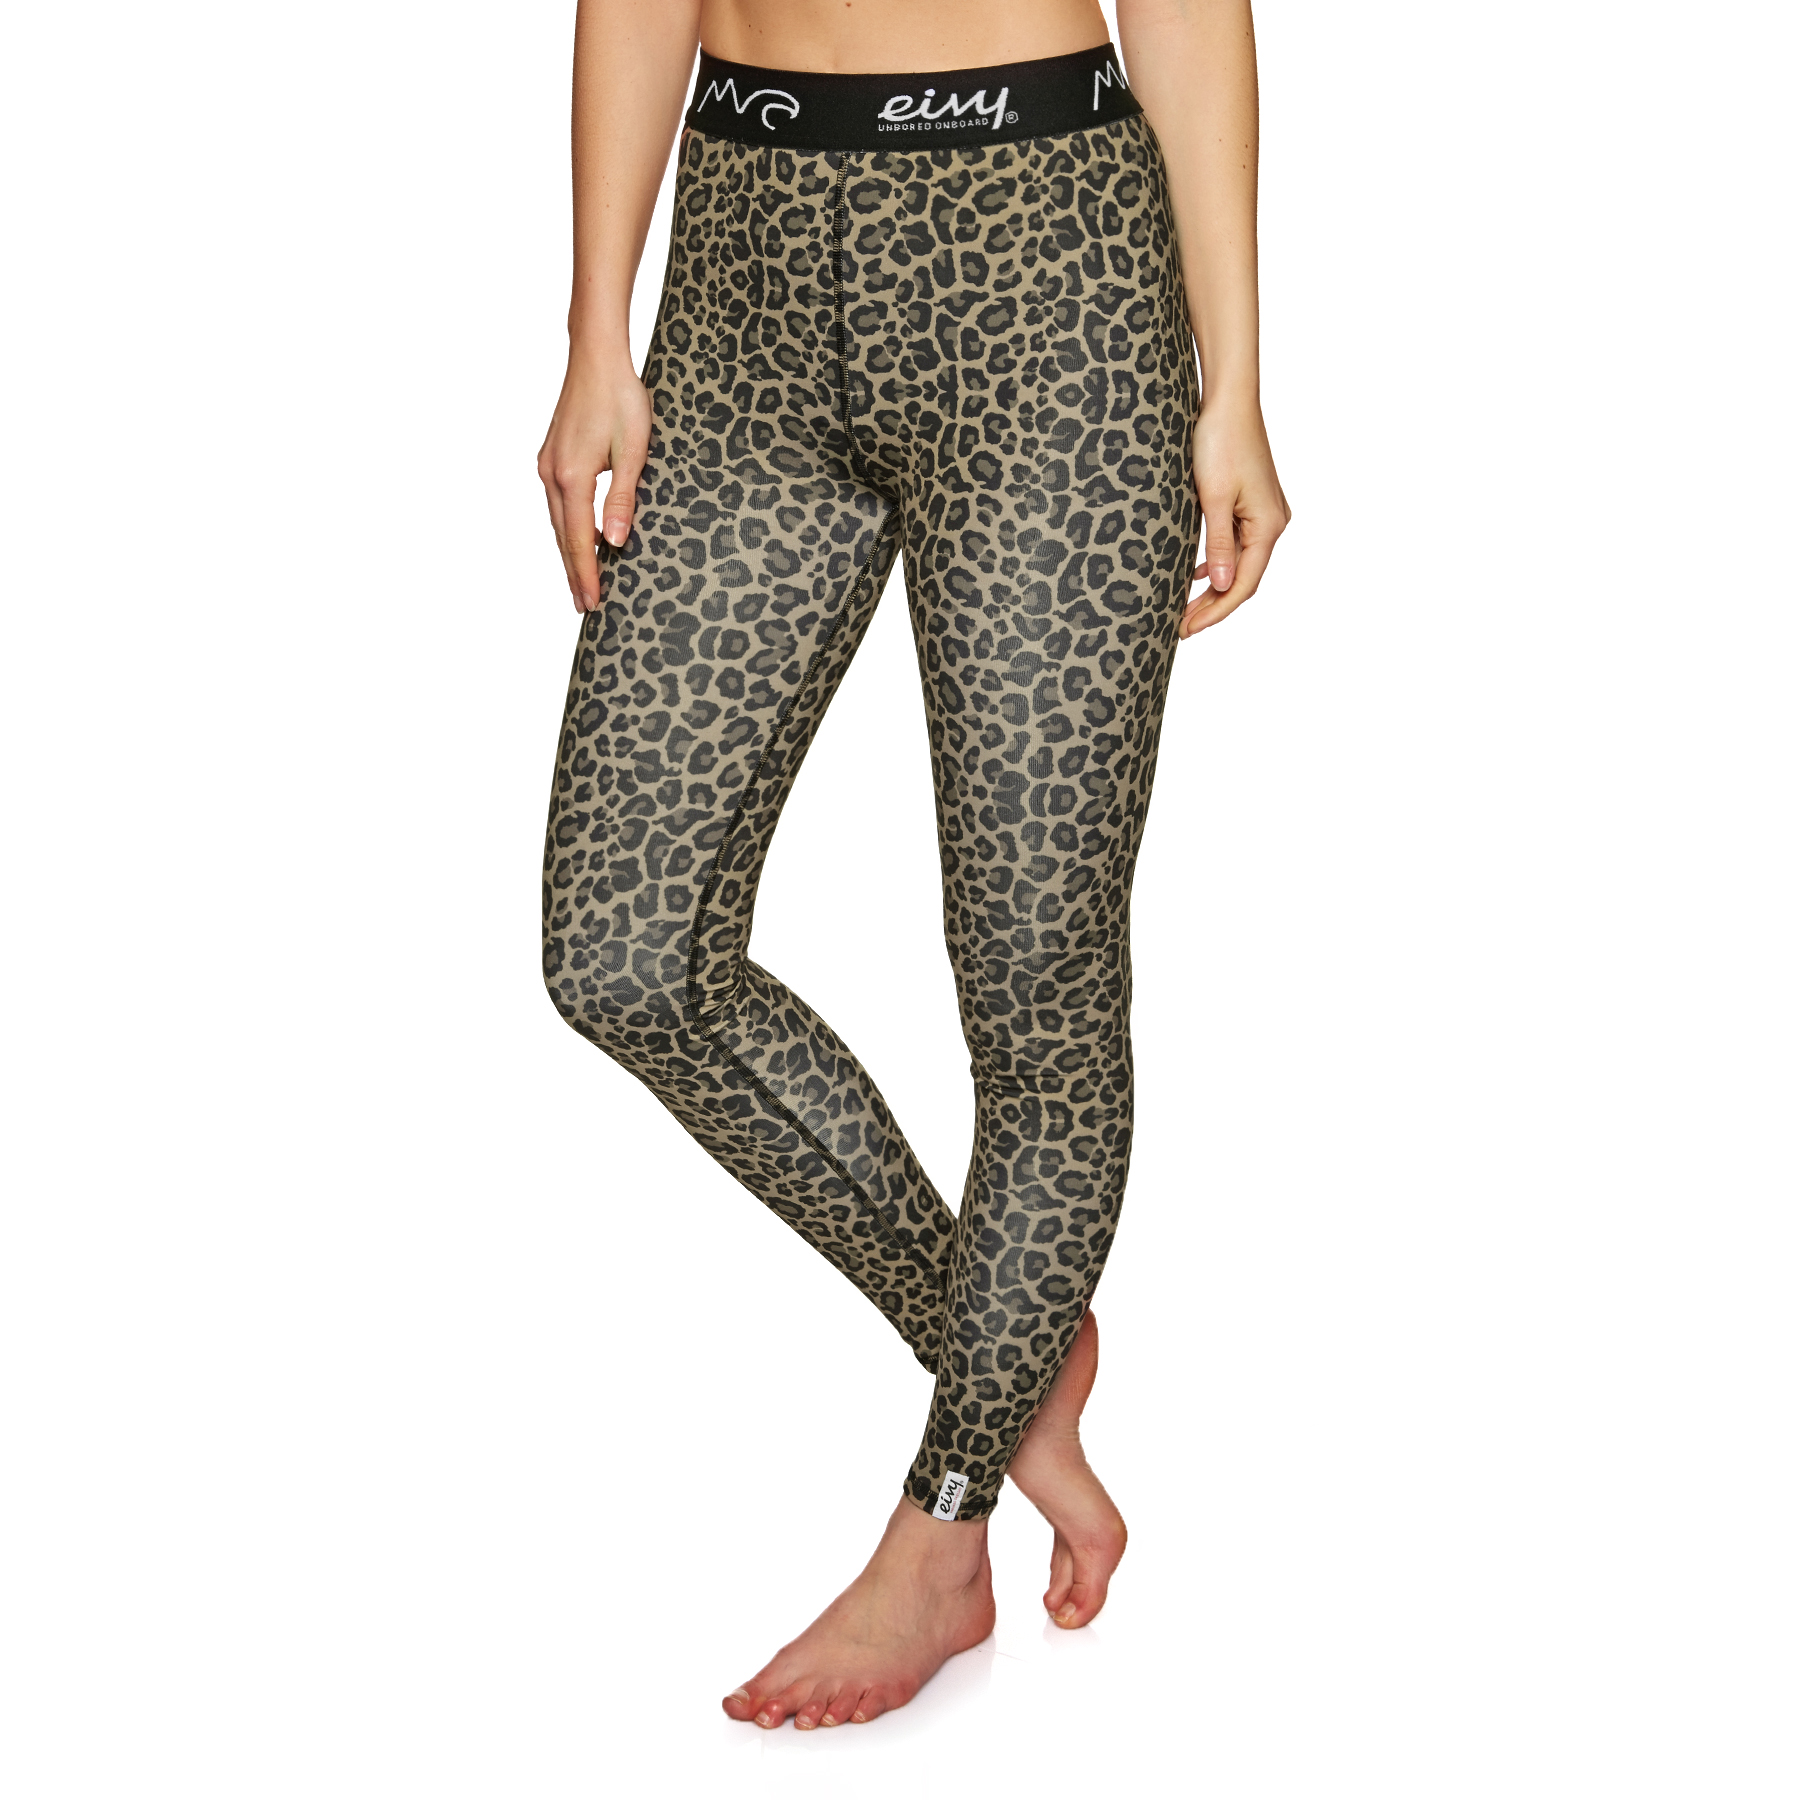 All Sizes Eivy Icecold Tights Leopard L Womens Base Layer Leggings